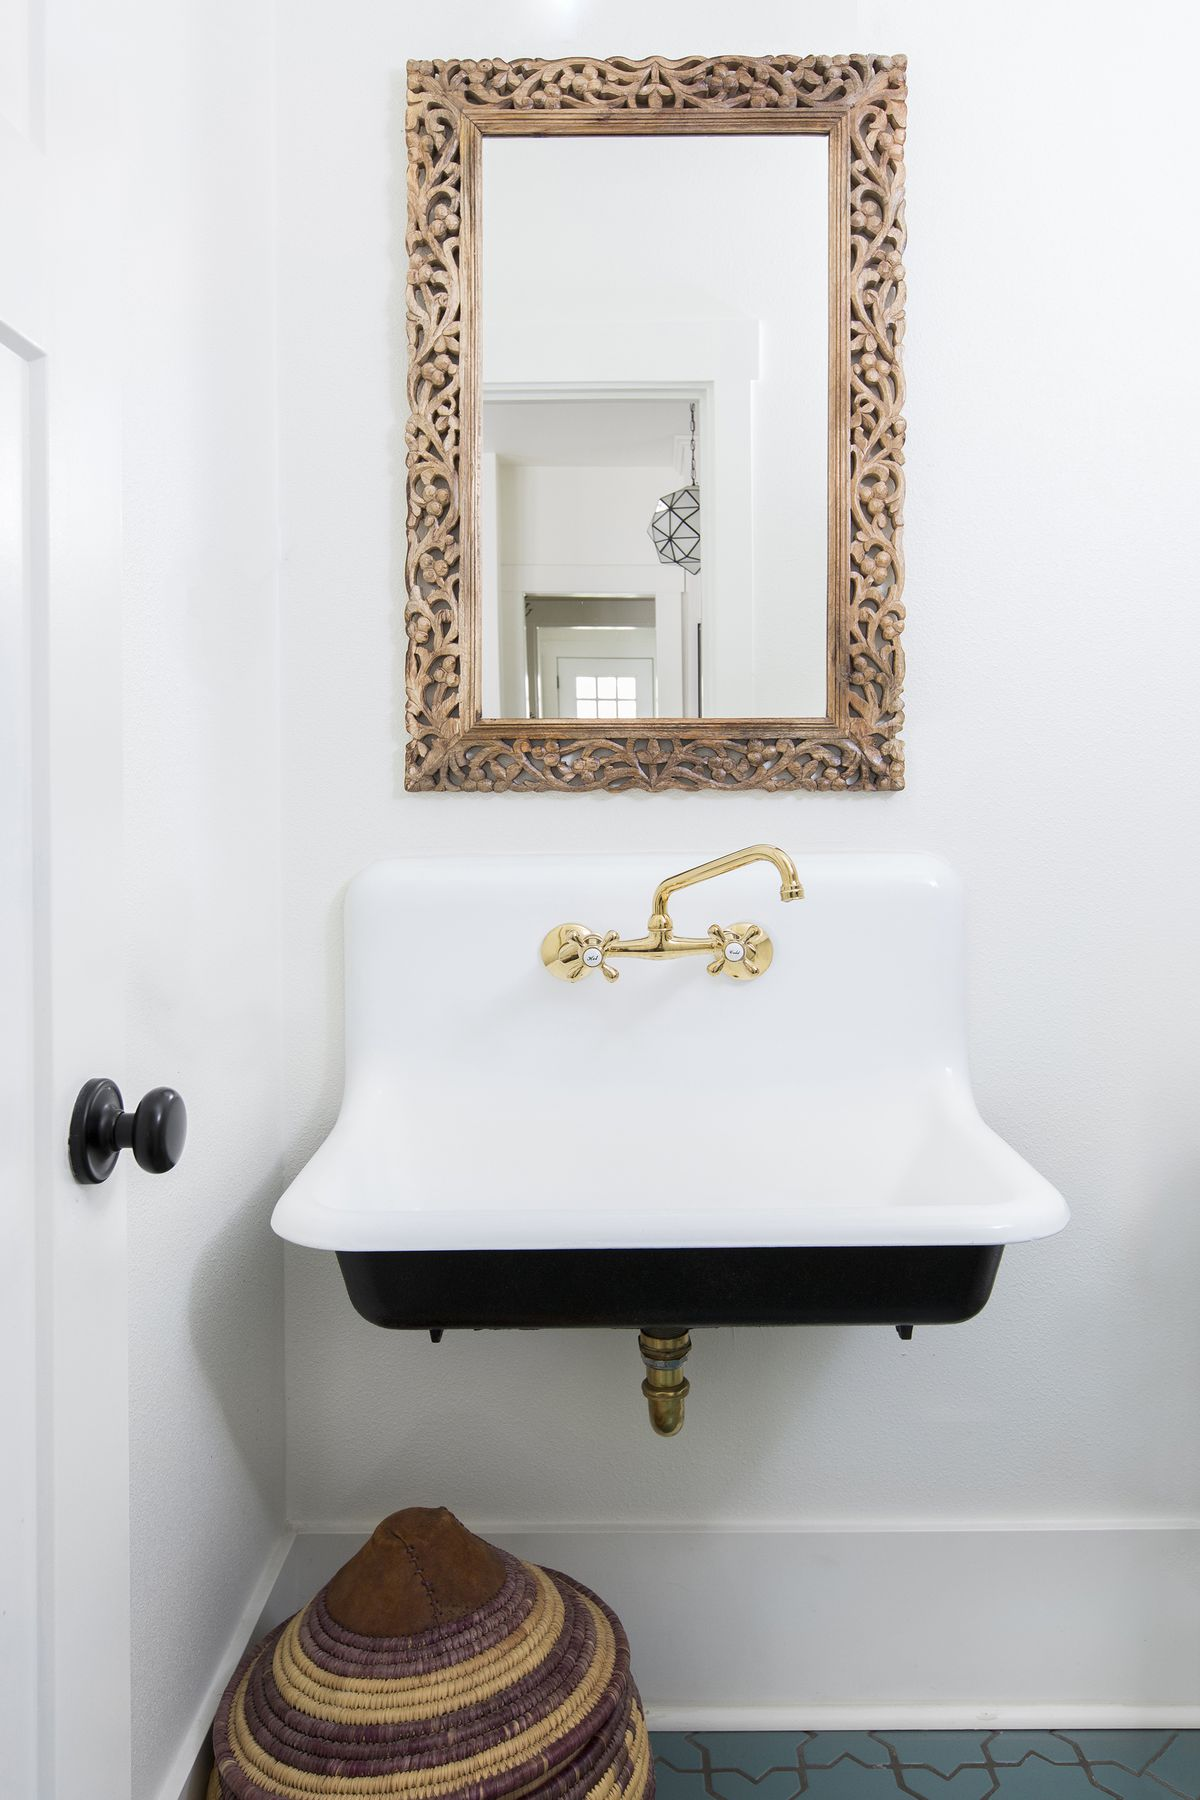 A bathroom. The sink is white. There is a mirror hanging over the sink which has an ornamental wooden frame. The walls are white.